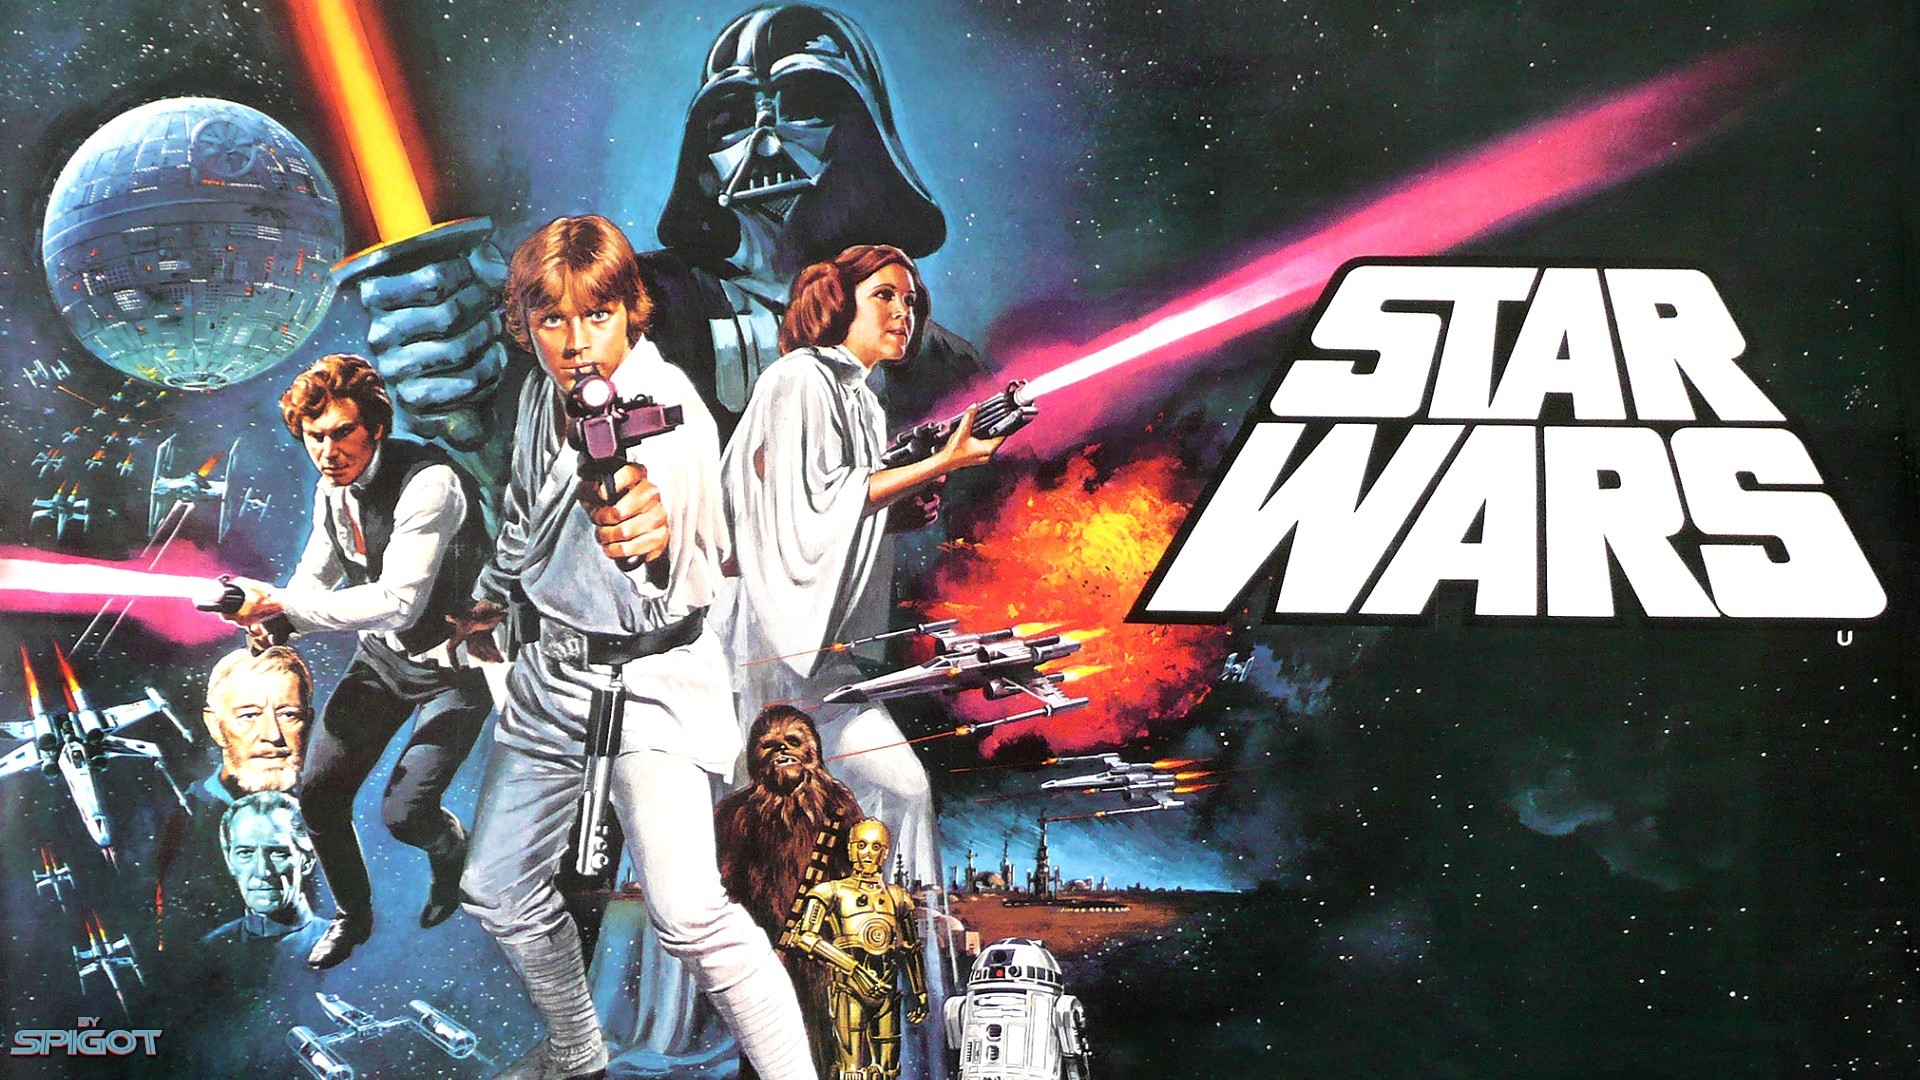 Star Wars Wallpapers old